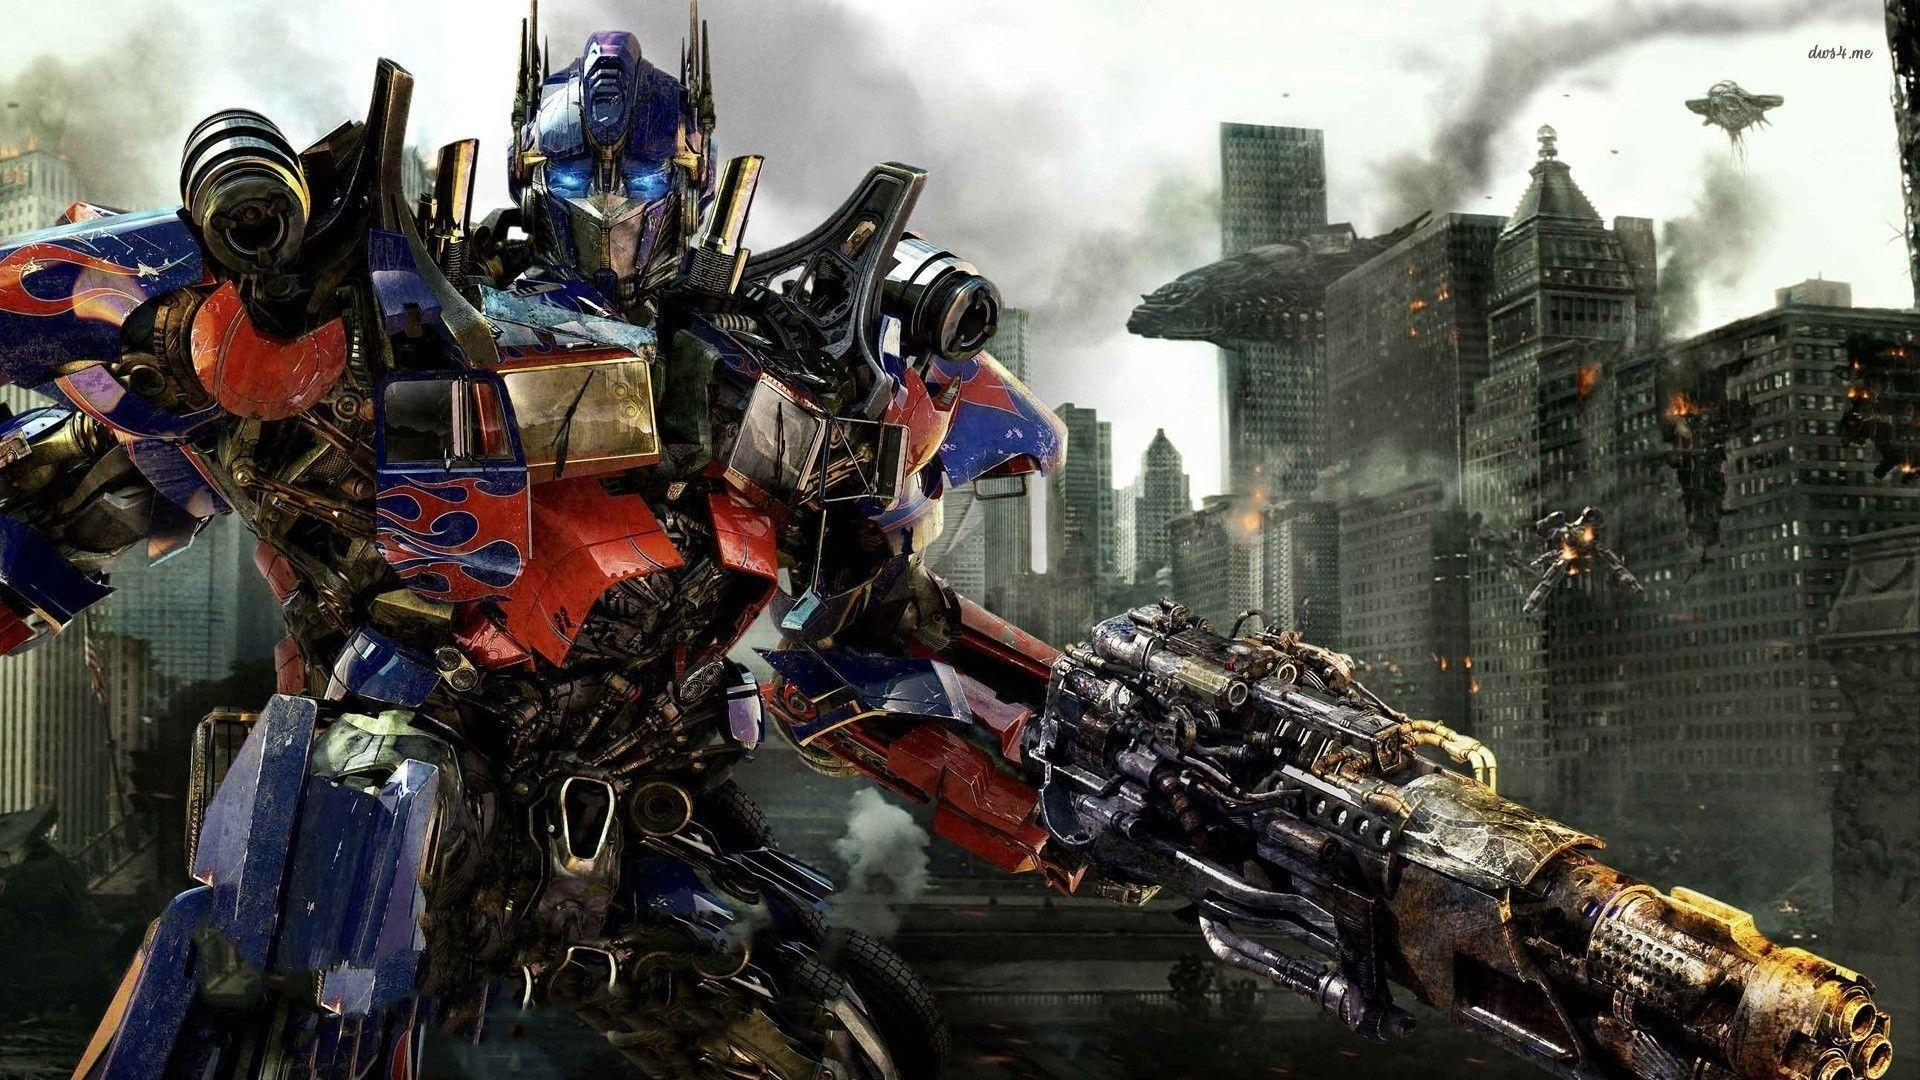 optimus prime wallpaper download - photo #26